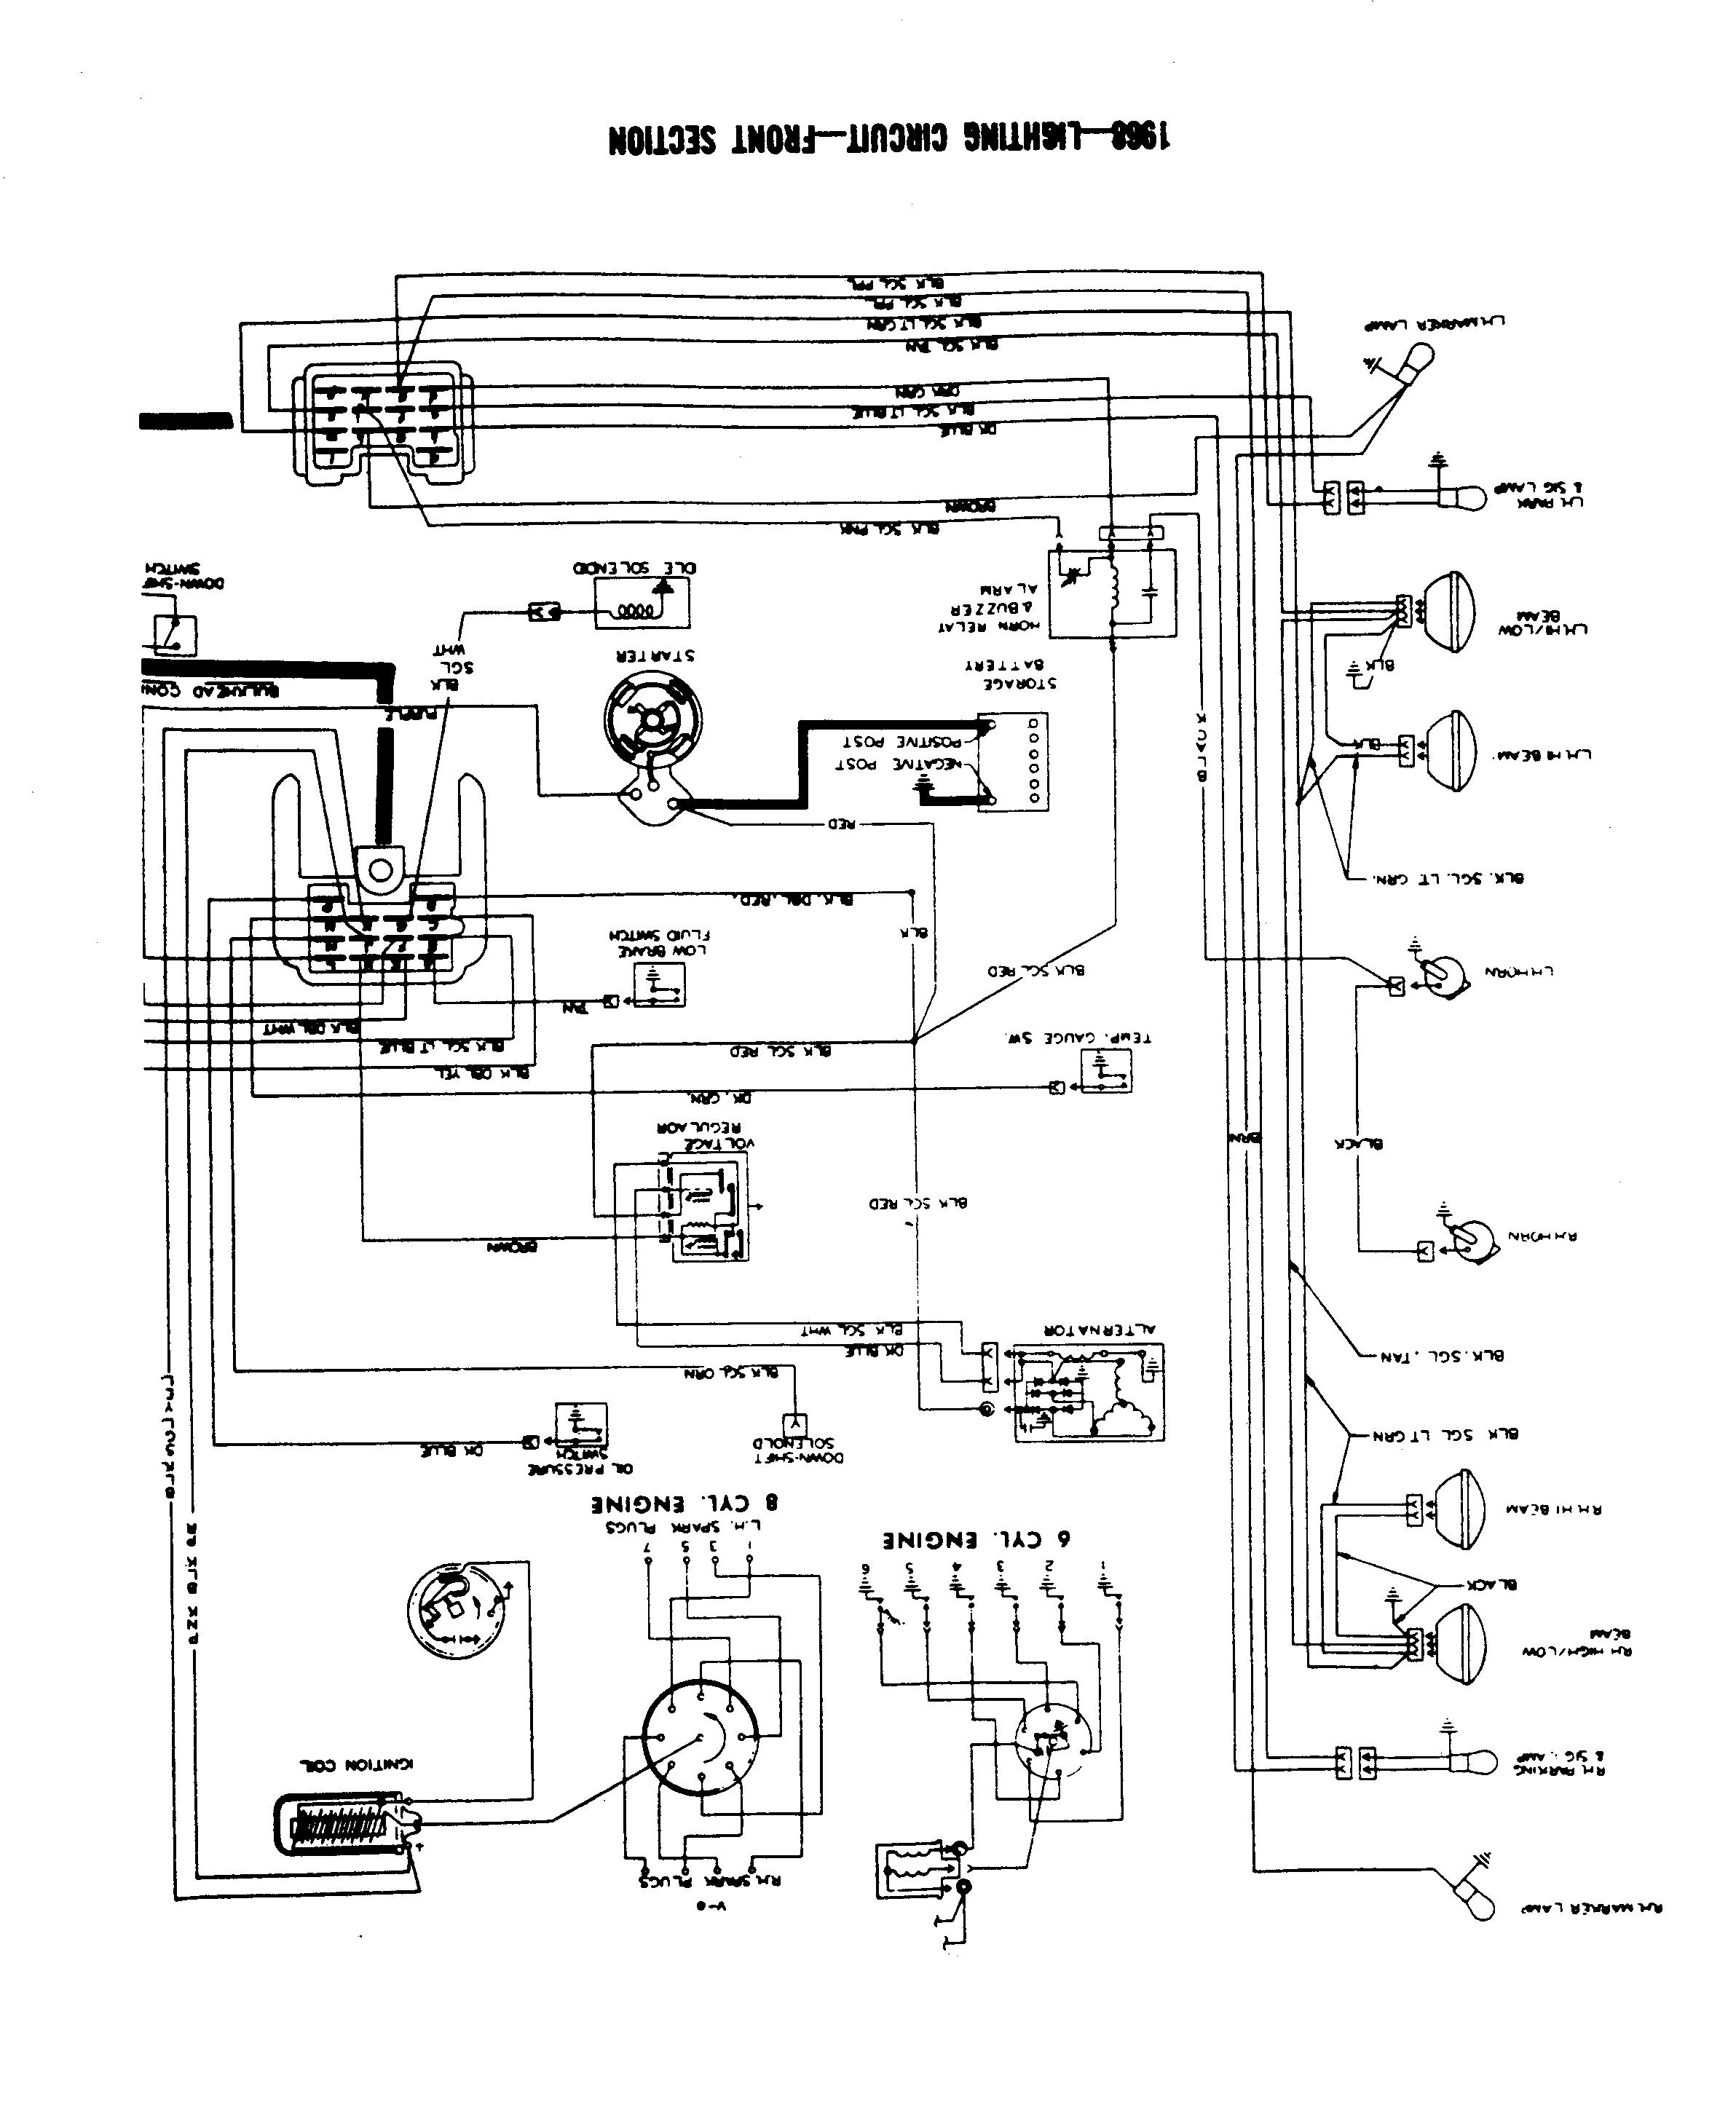 1966 gto fuse panel diagram 1966 mustang fuse box diagram 1965 gto wiring harness | wiring library